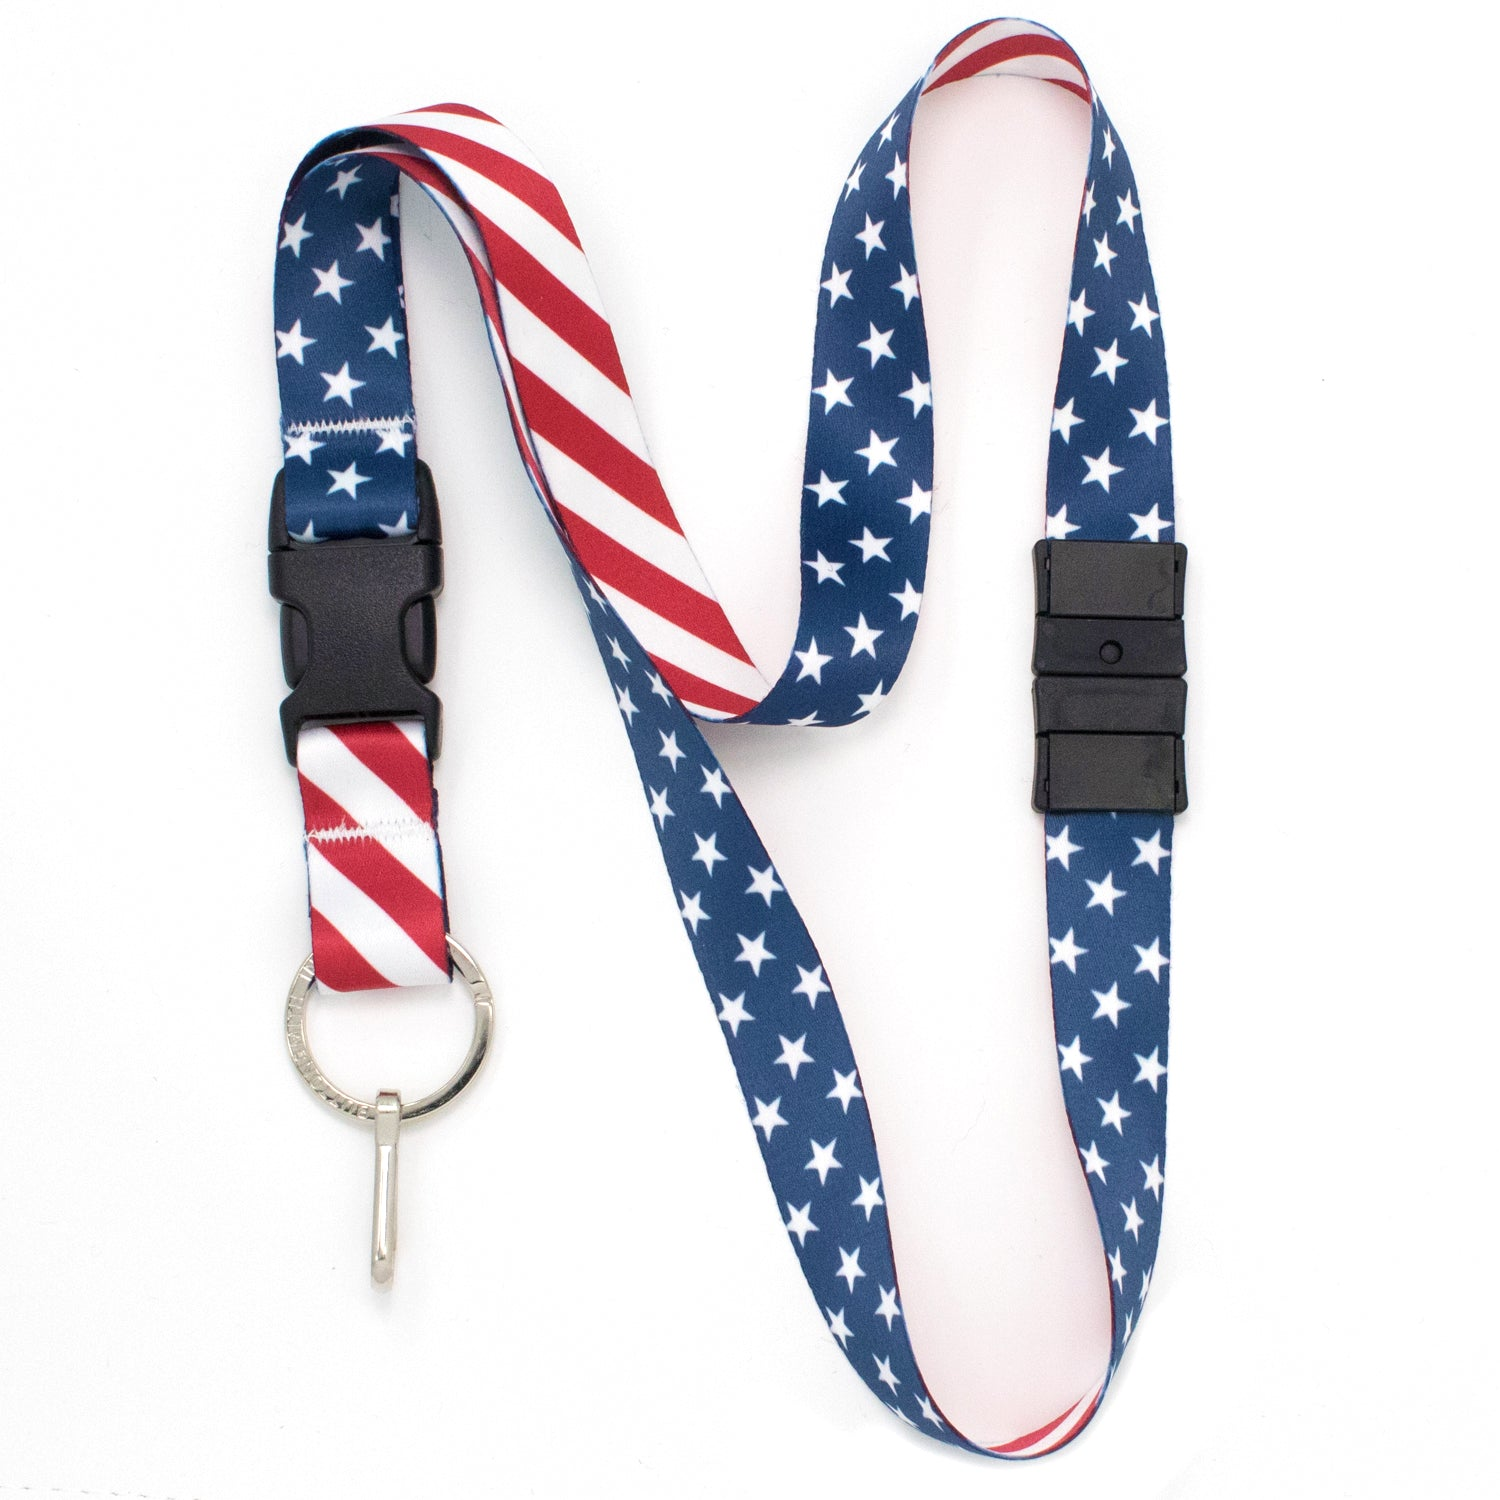 Buttonsmith Stars & Stripes Breakaway Lanyard - Made in USA